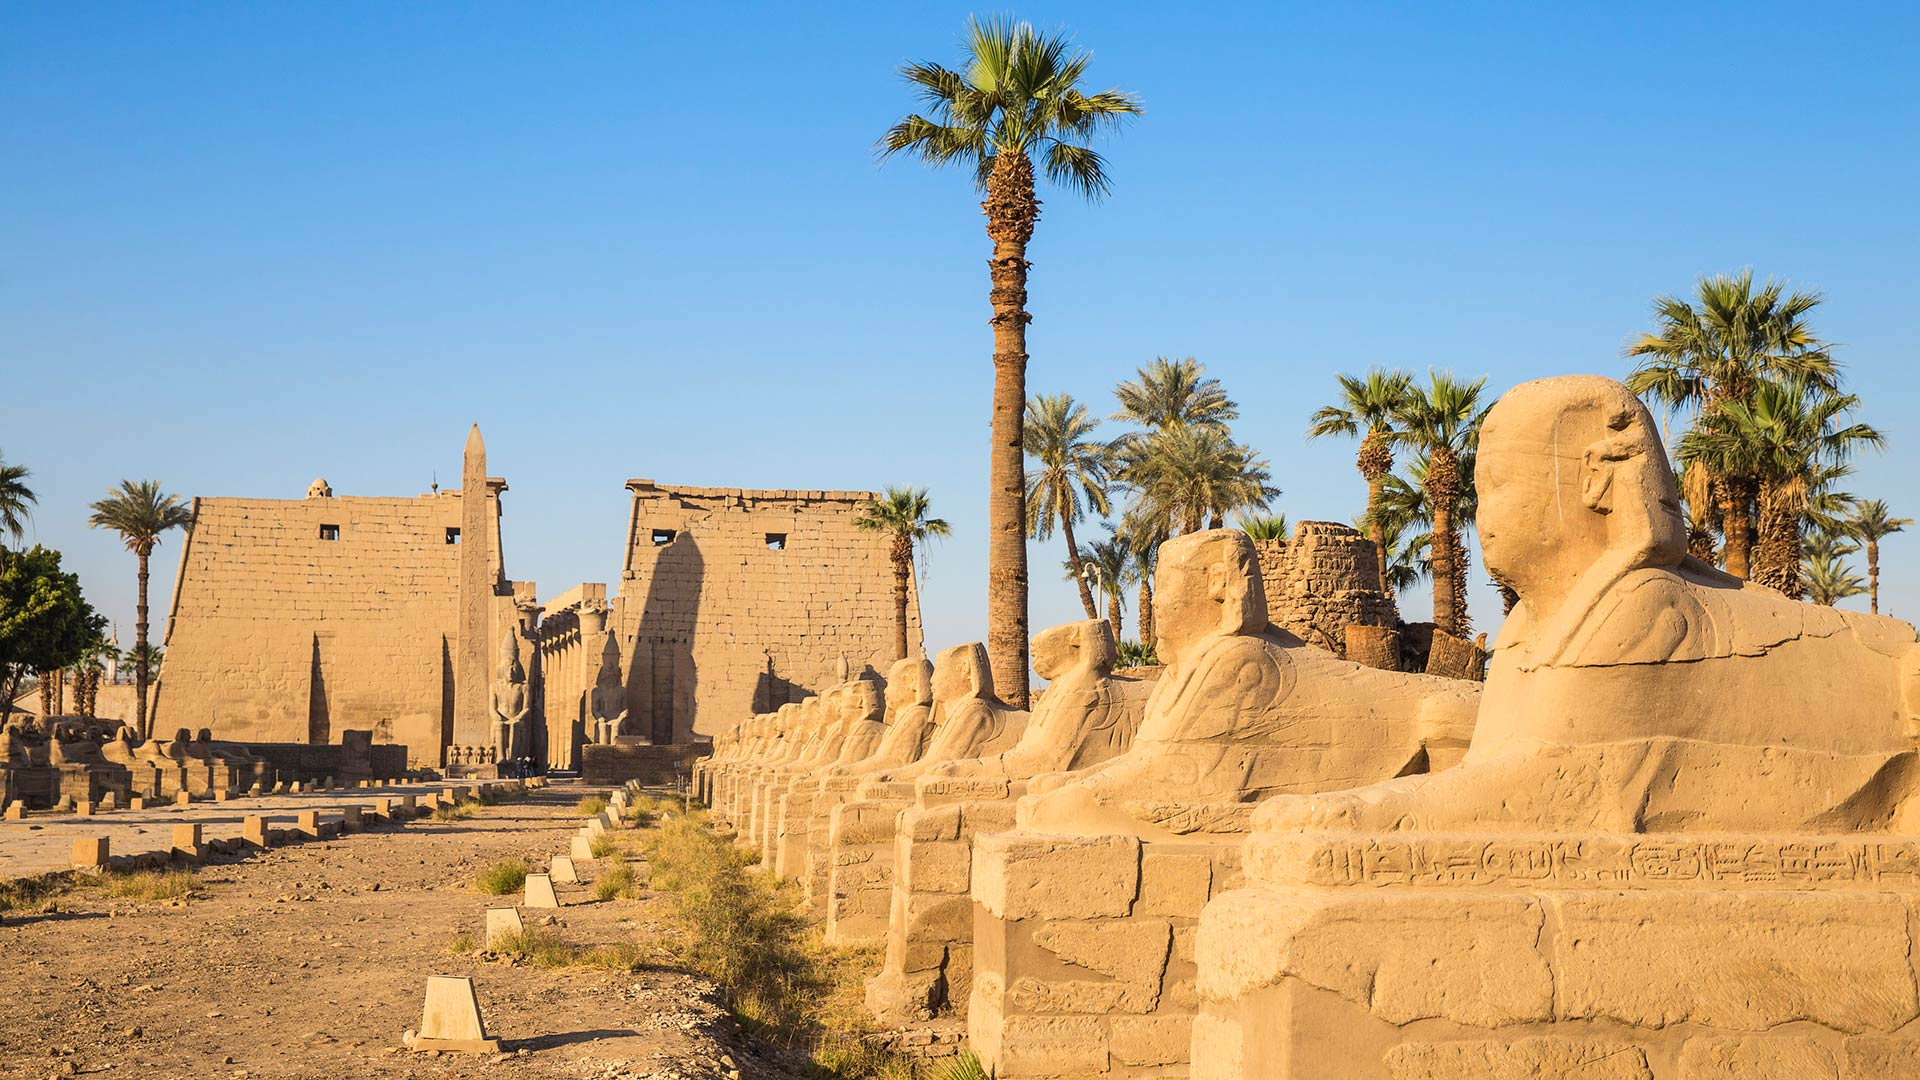 The Avenue of the Sphinxes and the entrance to Luxor Temple in Egypt